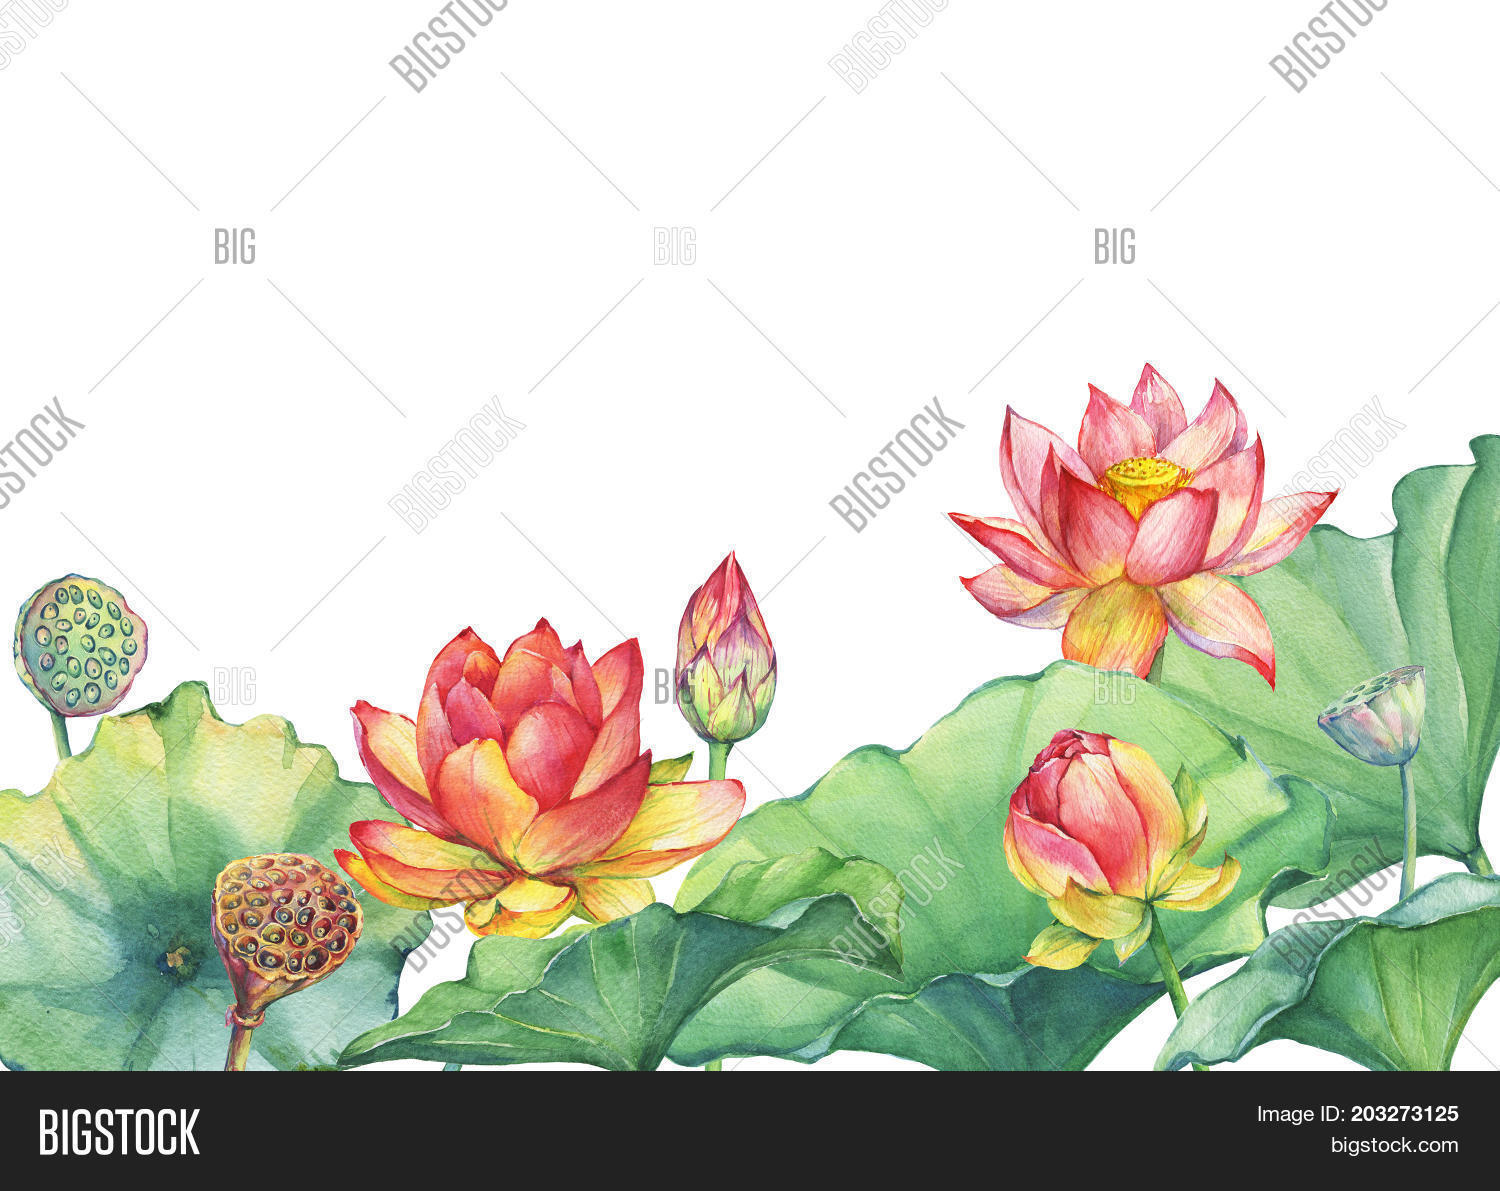 Banner border pink image photo free trial bigstock banner border of pink lotus flower with leaves seed head bud water izmirmasajfo